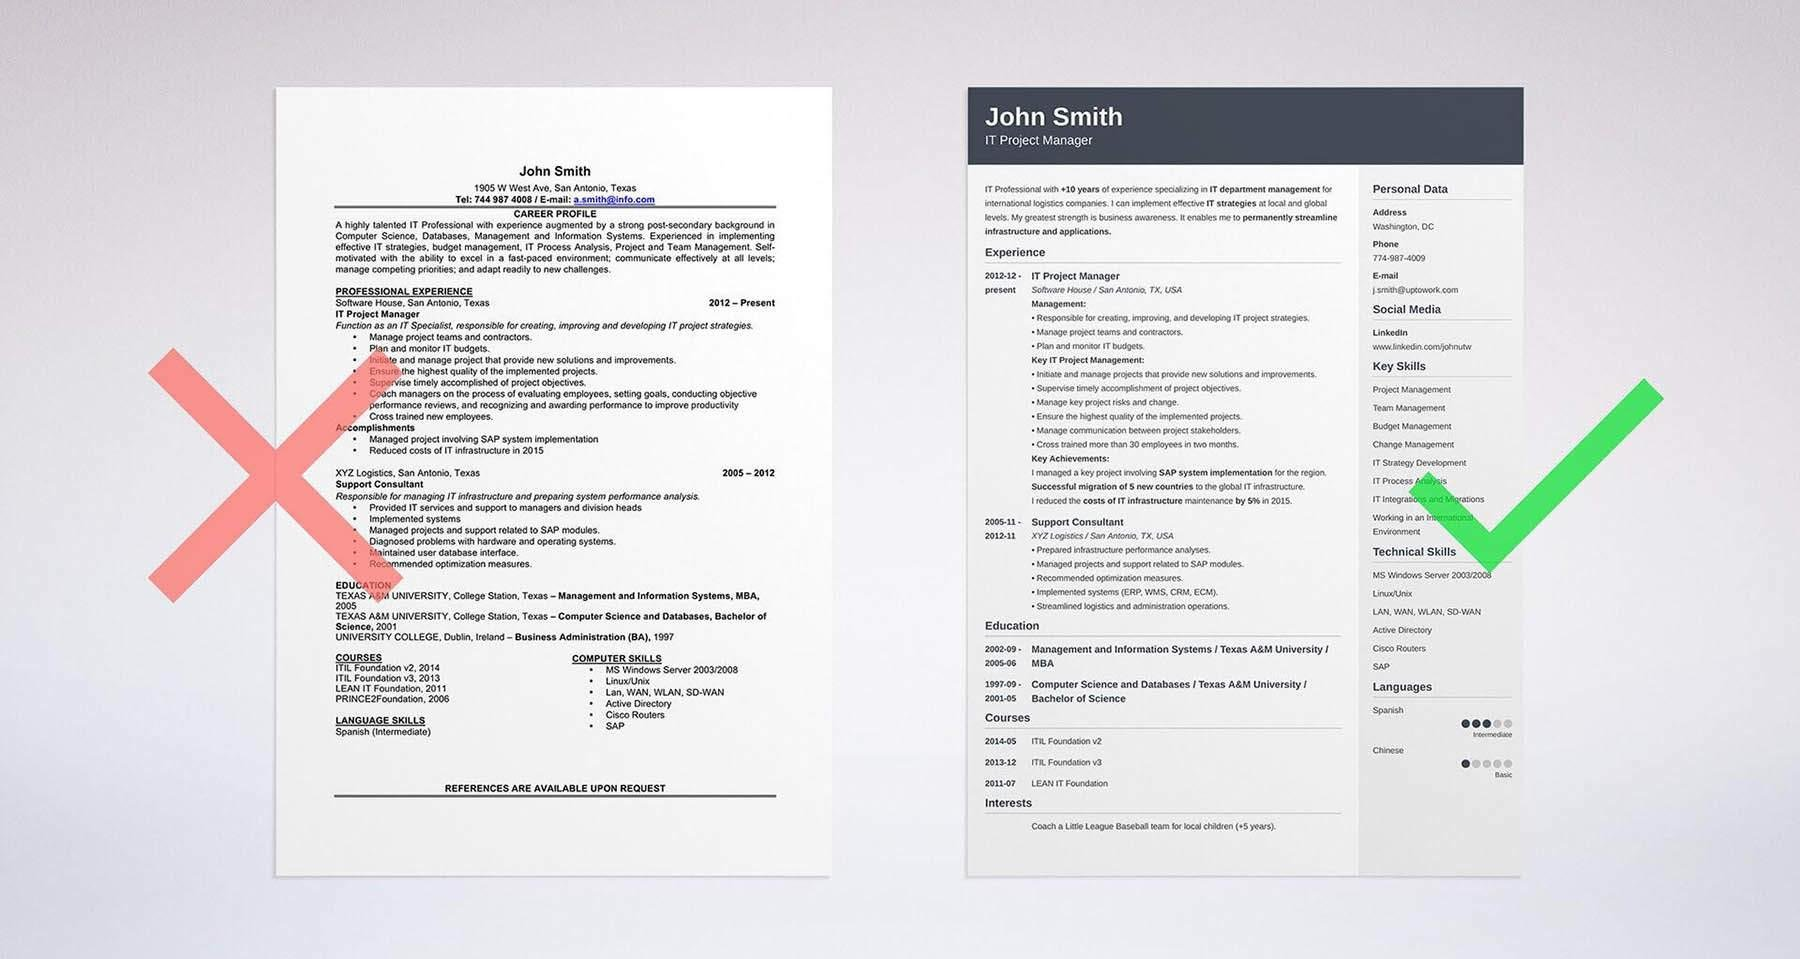 Highlight Your Resume Objective With Our Templates   Create Your Resume In  5 Minutes Here.  Objectives In Resume Examples